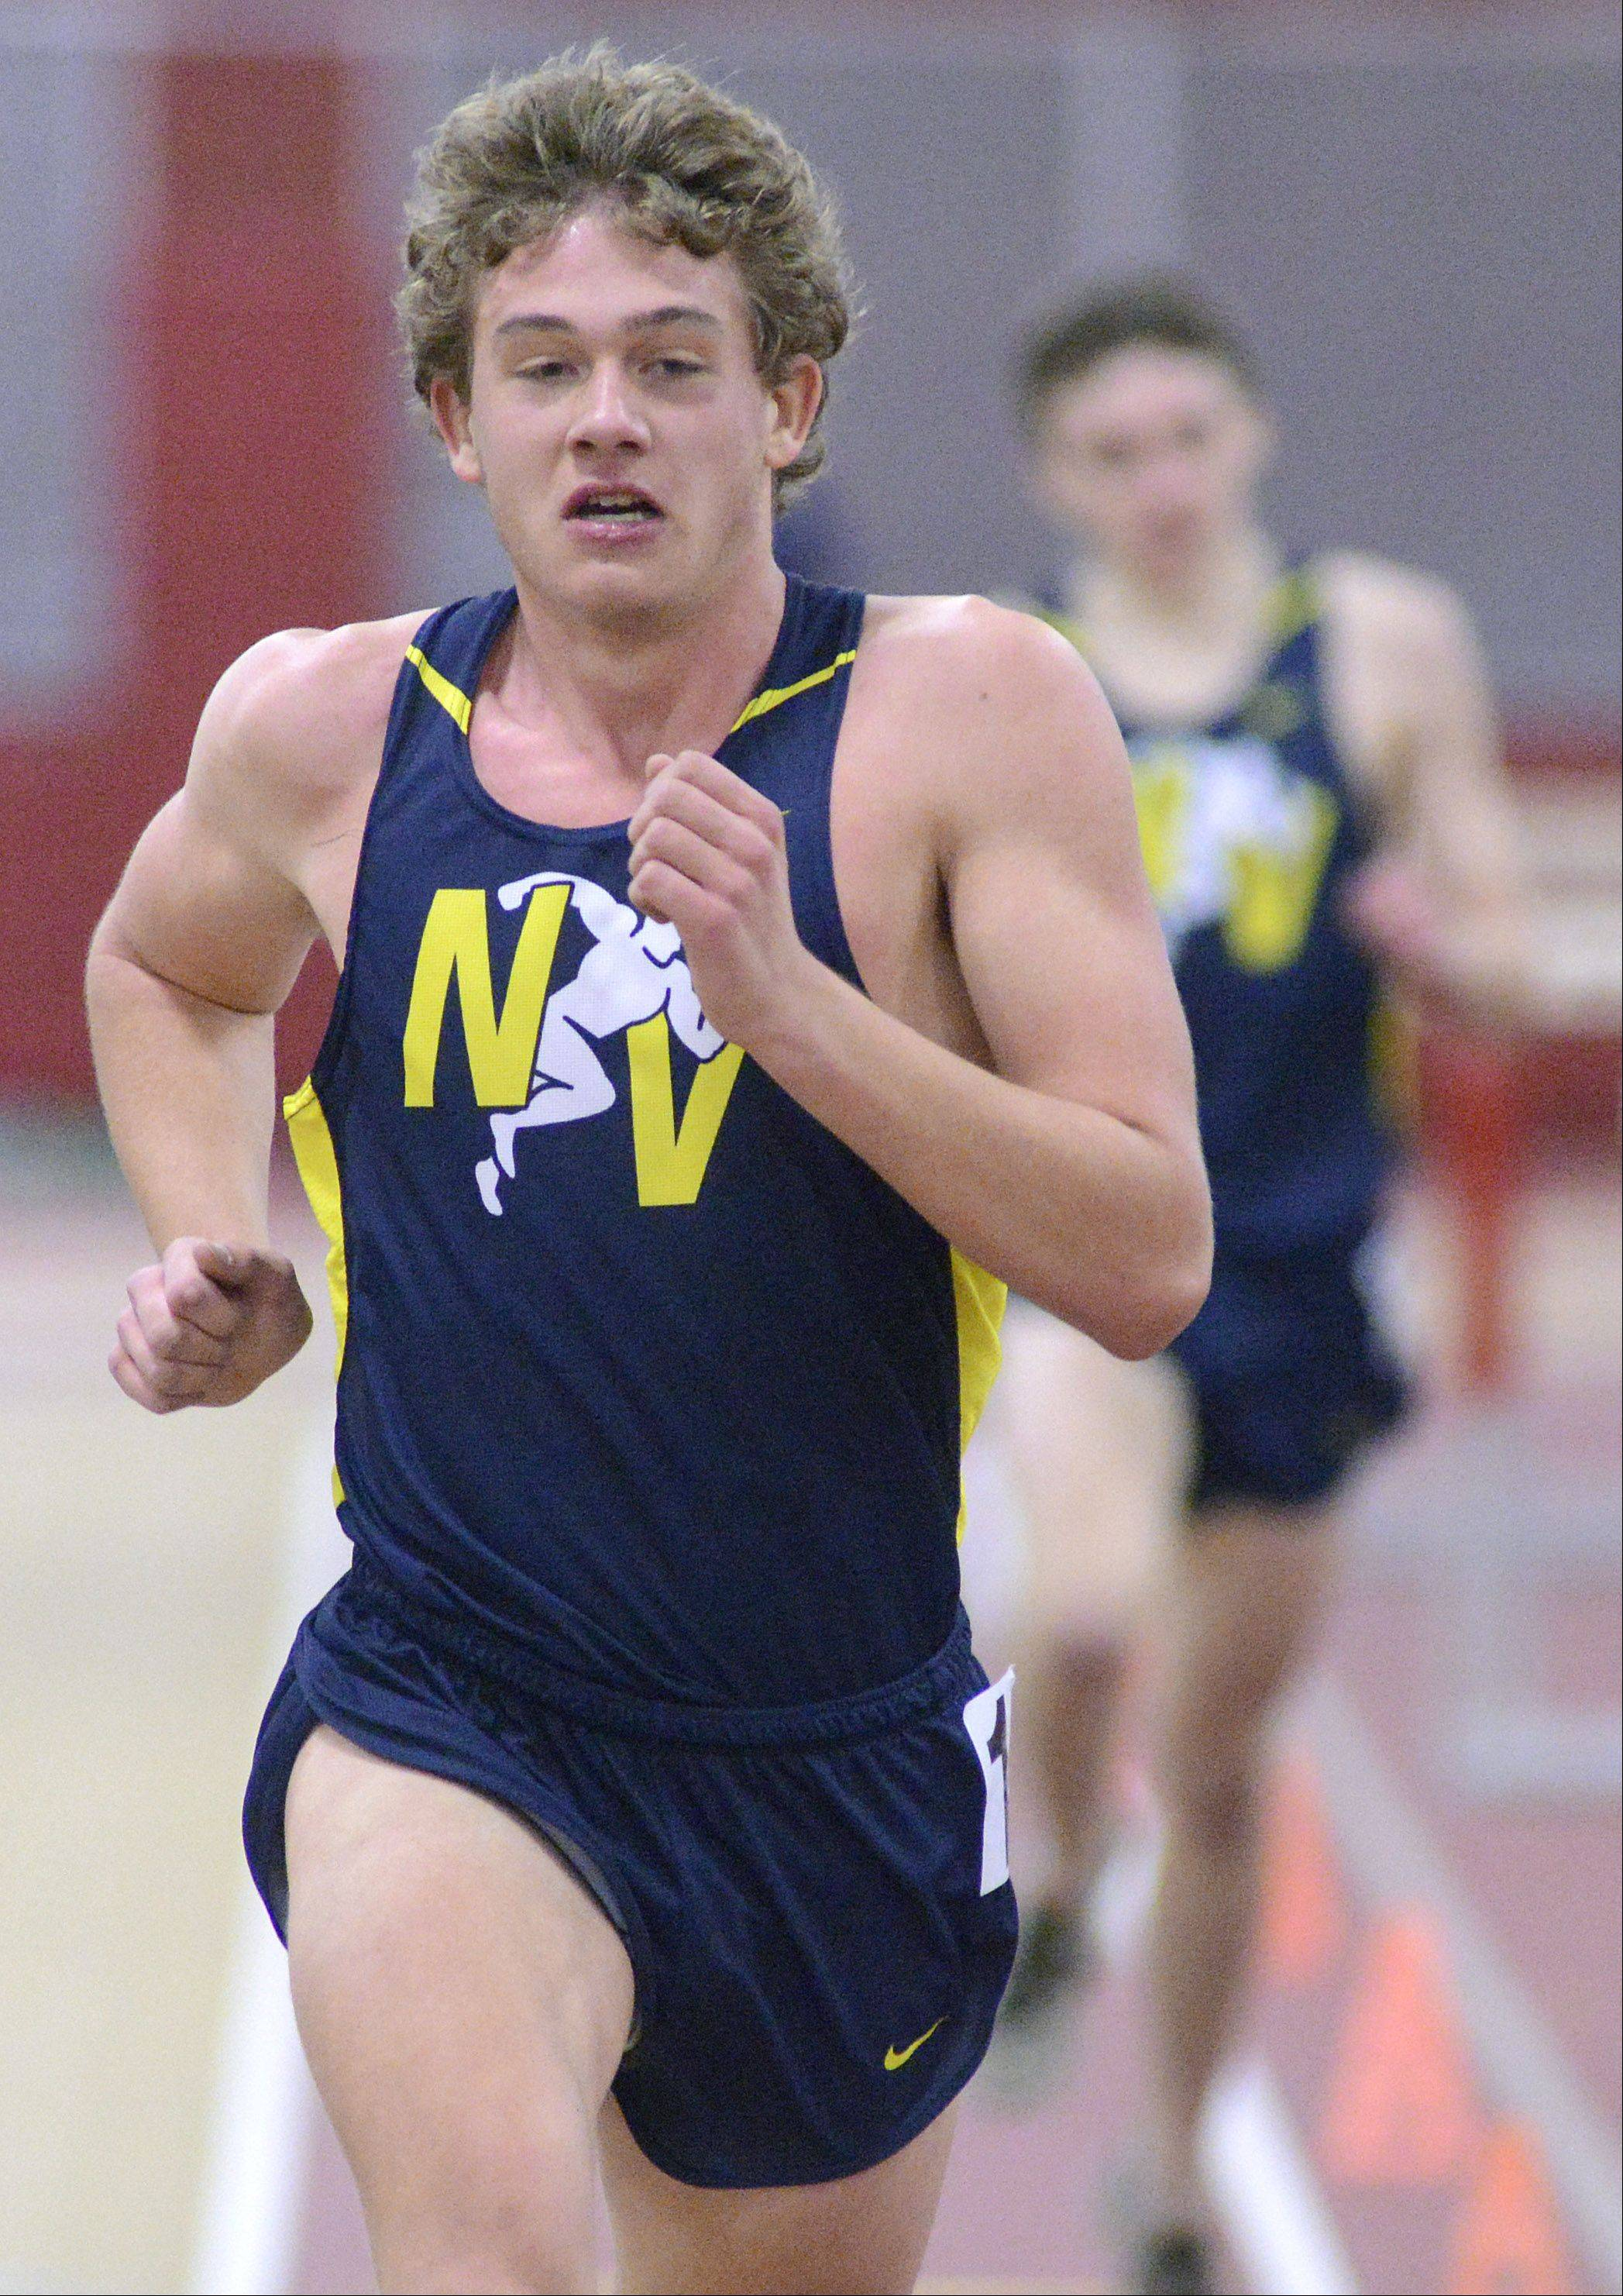 Neuqua Valley�s Nick Bushelle wins the 3200 meter run at the Upstate Eight Conference in Batavia on Saturday, March 16.